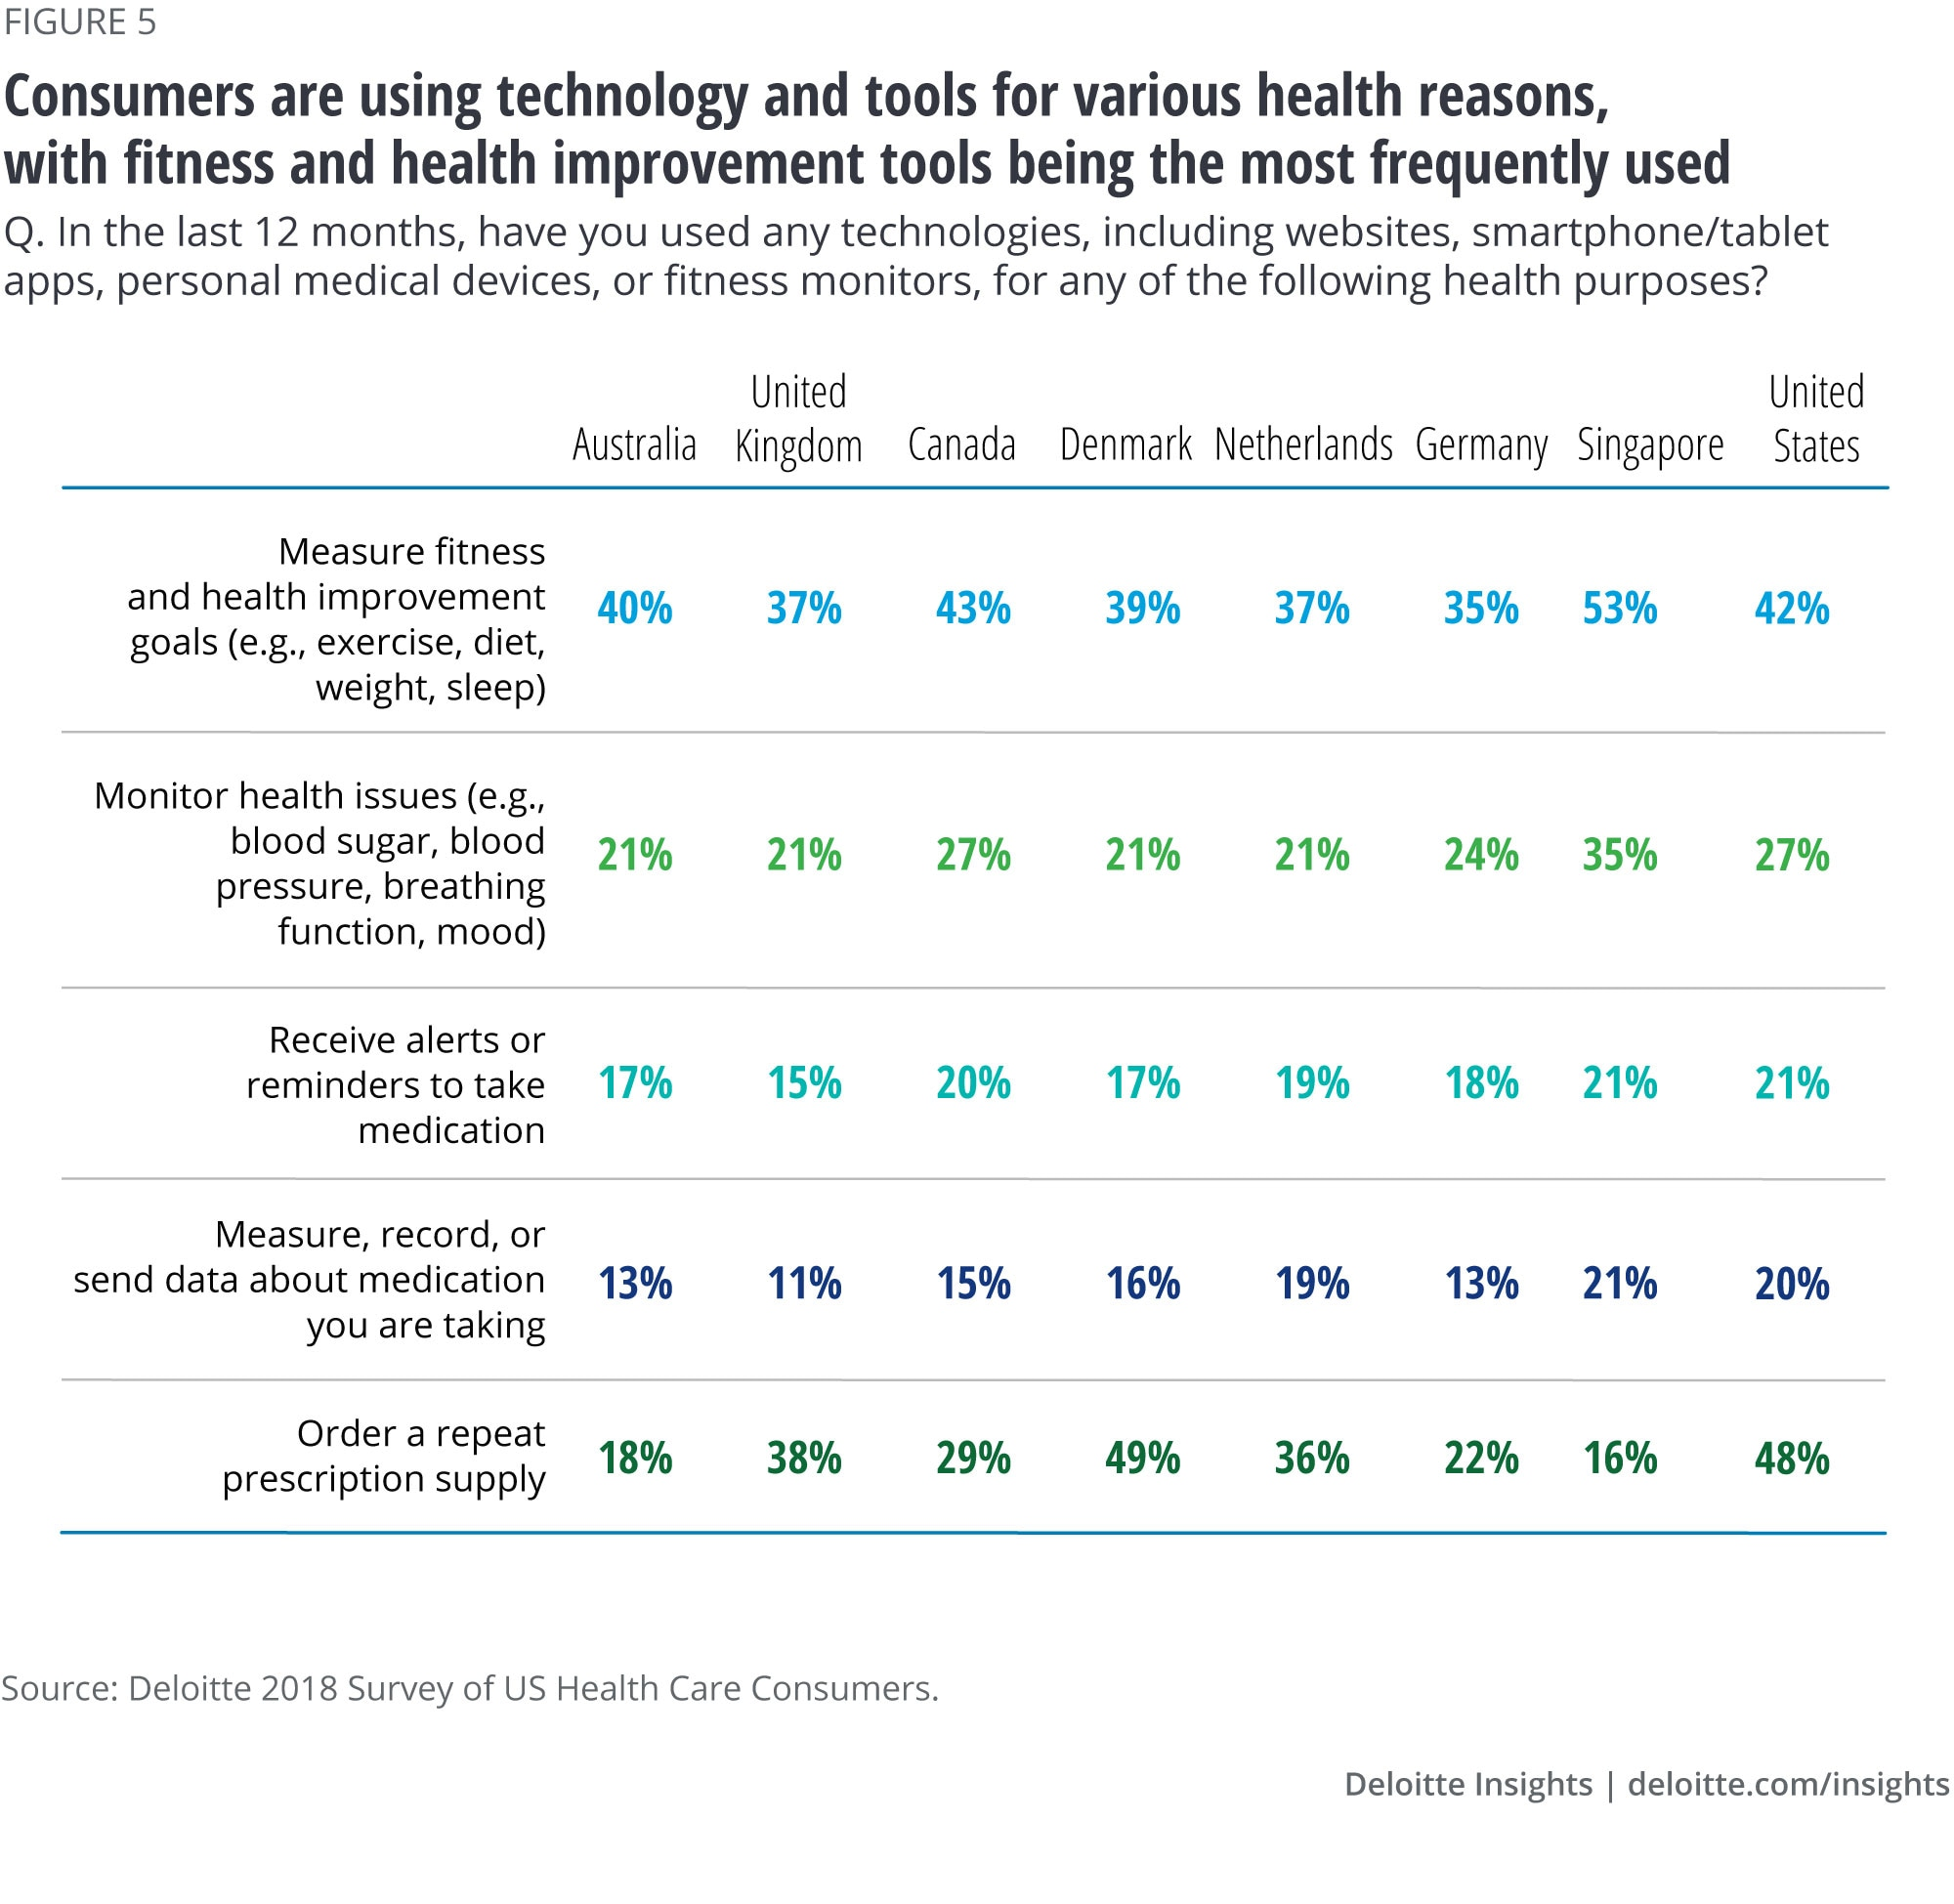 Consumers are using technology and tools for various health reasons, with fitness and health improvement tools being the most frequently used